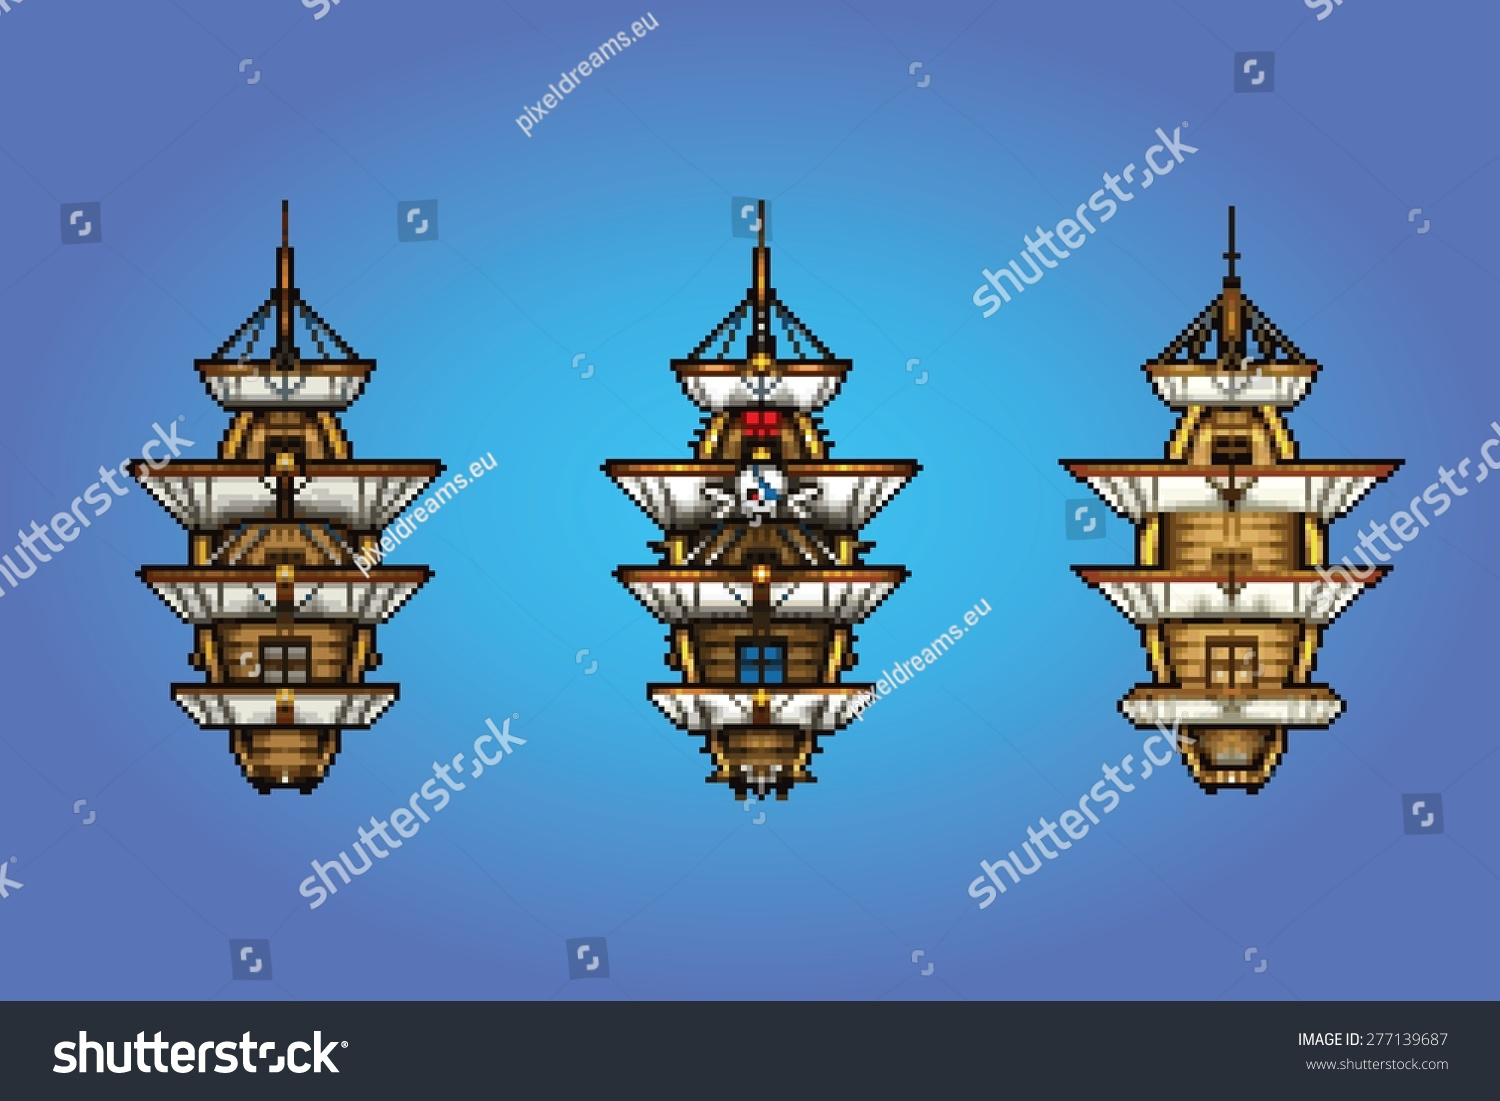 Pixel Art Style Pirate Ship Collection Stock Vector Royalty Free 277139687